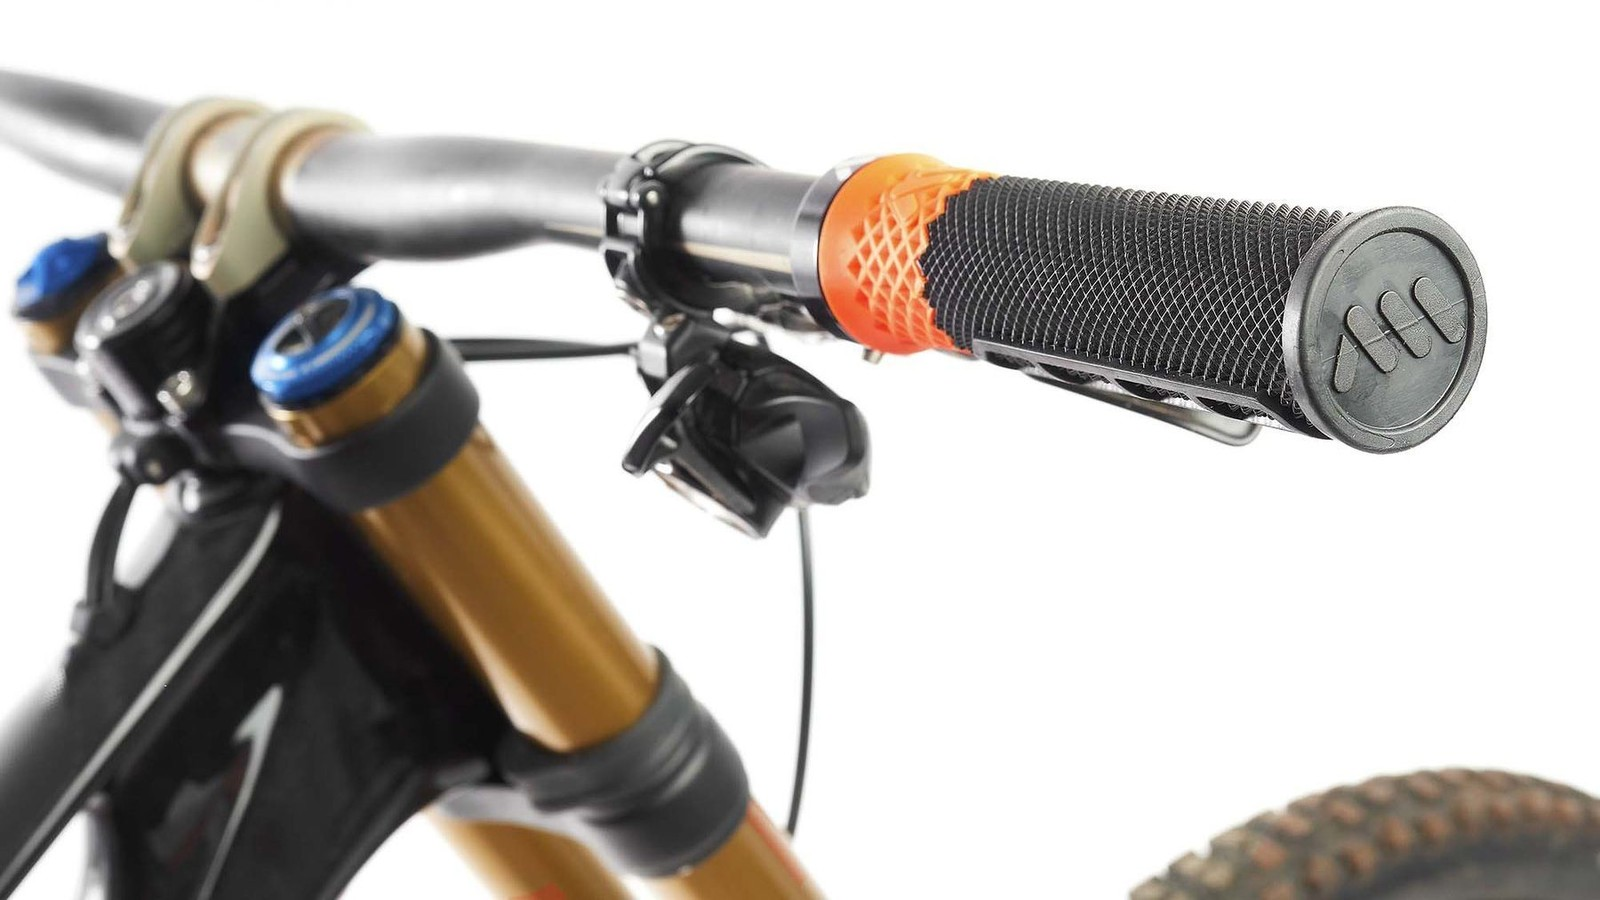 AMS Launches New Cero and Berm Grips